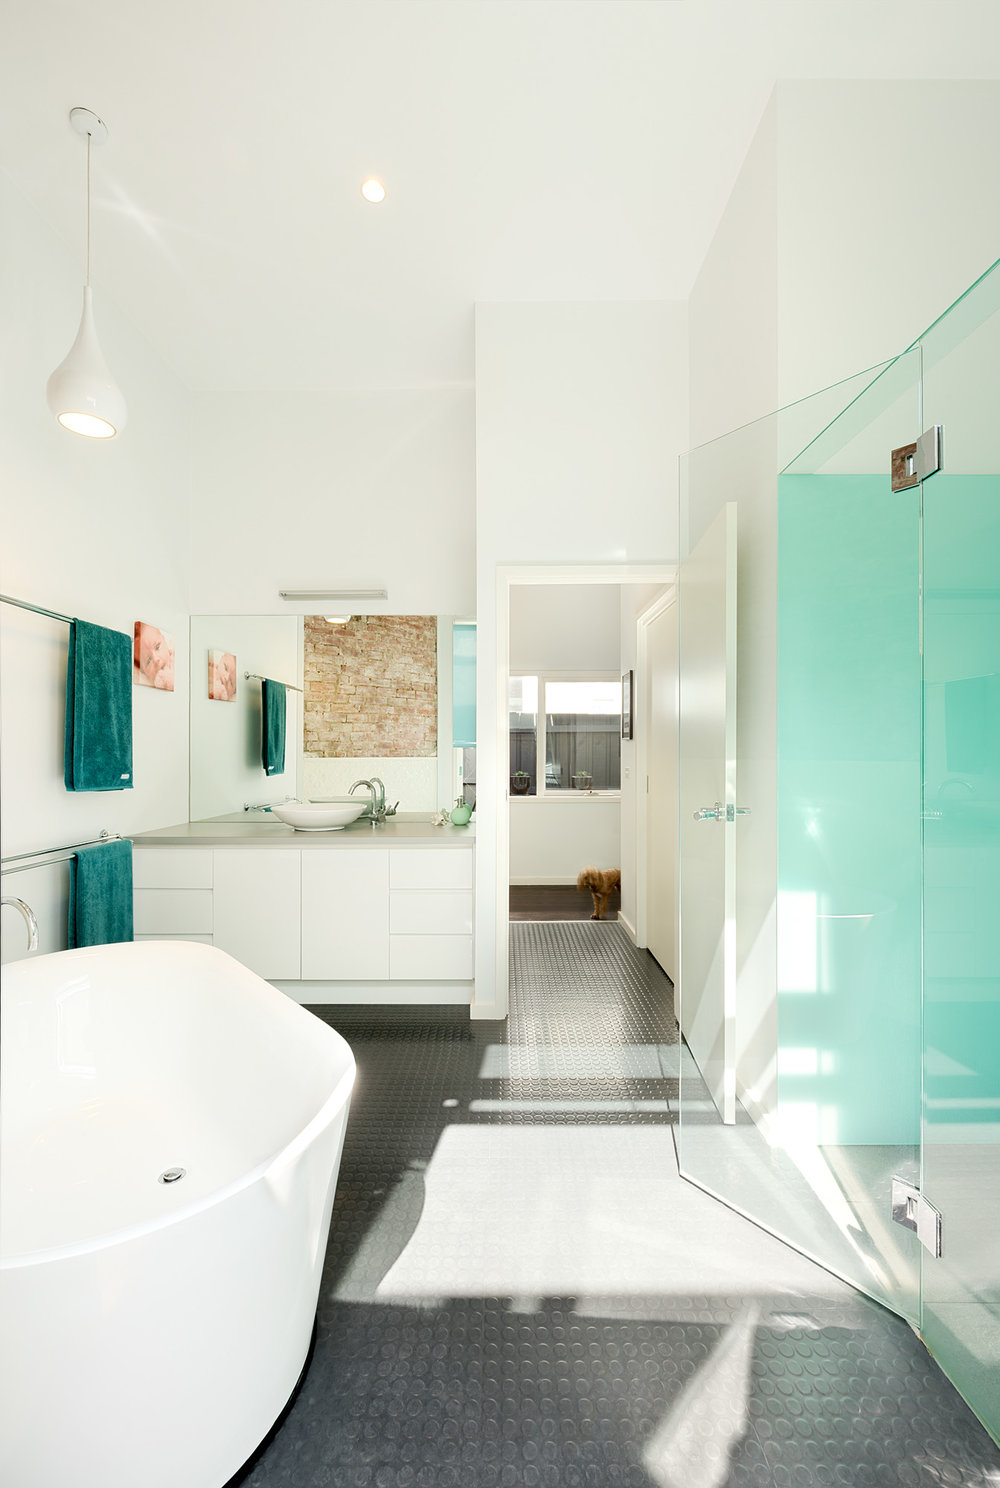 green sheep collective light filled bathroom environmentally friendly sustainable architect brunswick melbourne.jpg